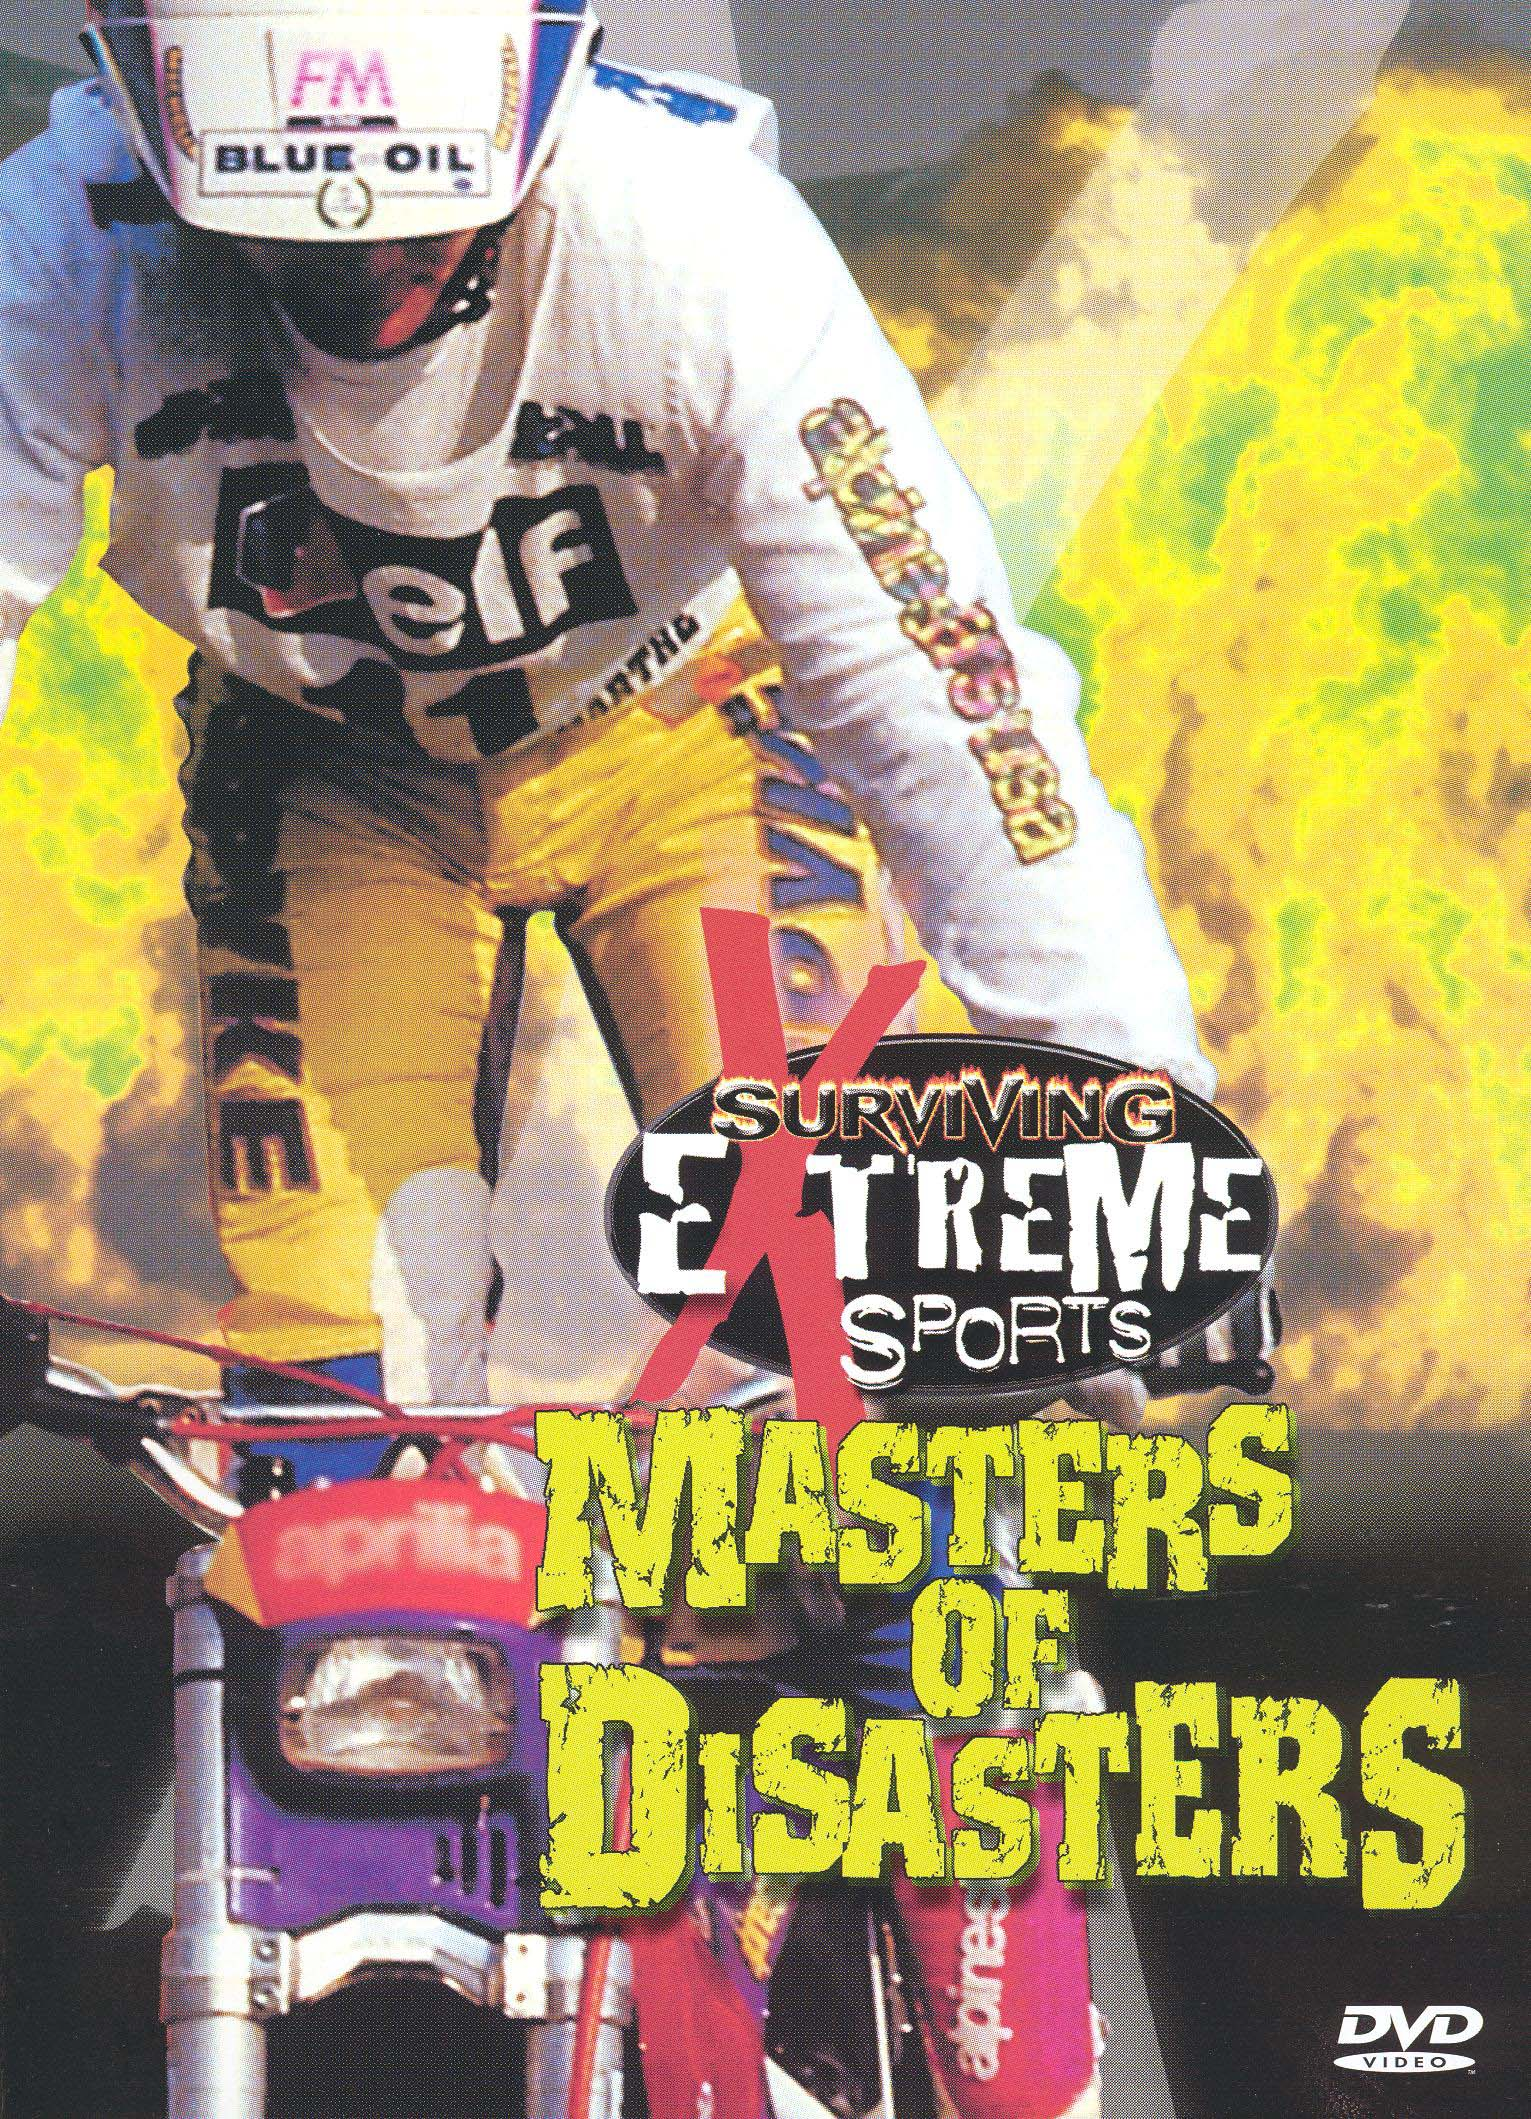 Surviving Extreme Sports: Masters of Disasters